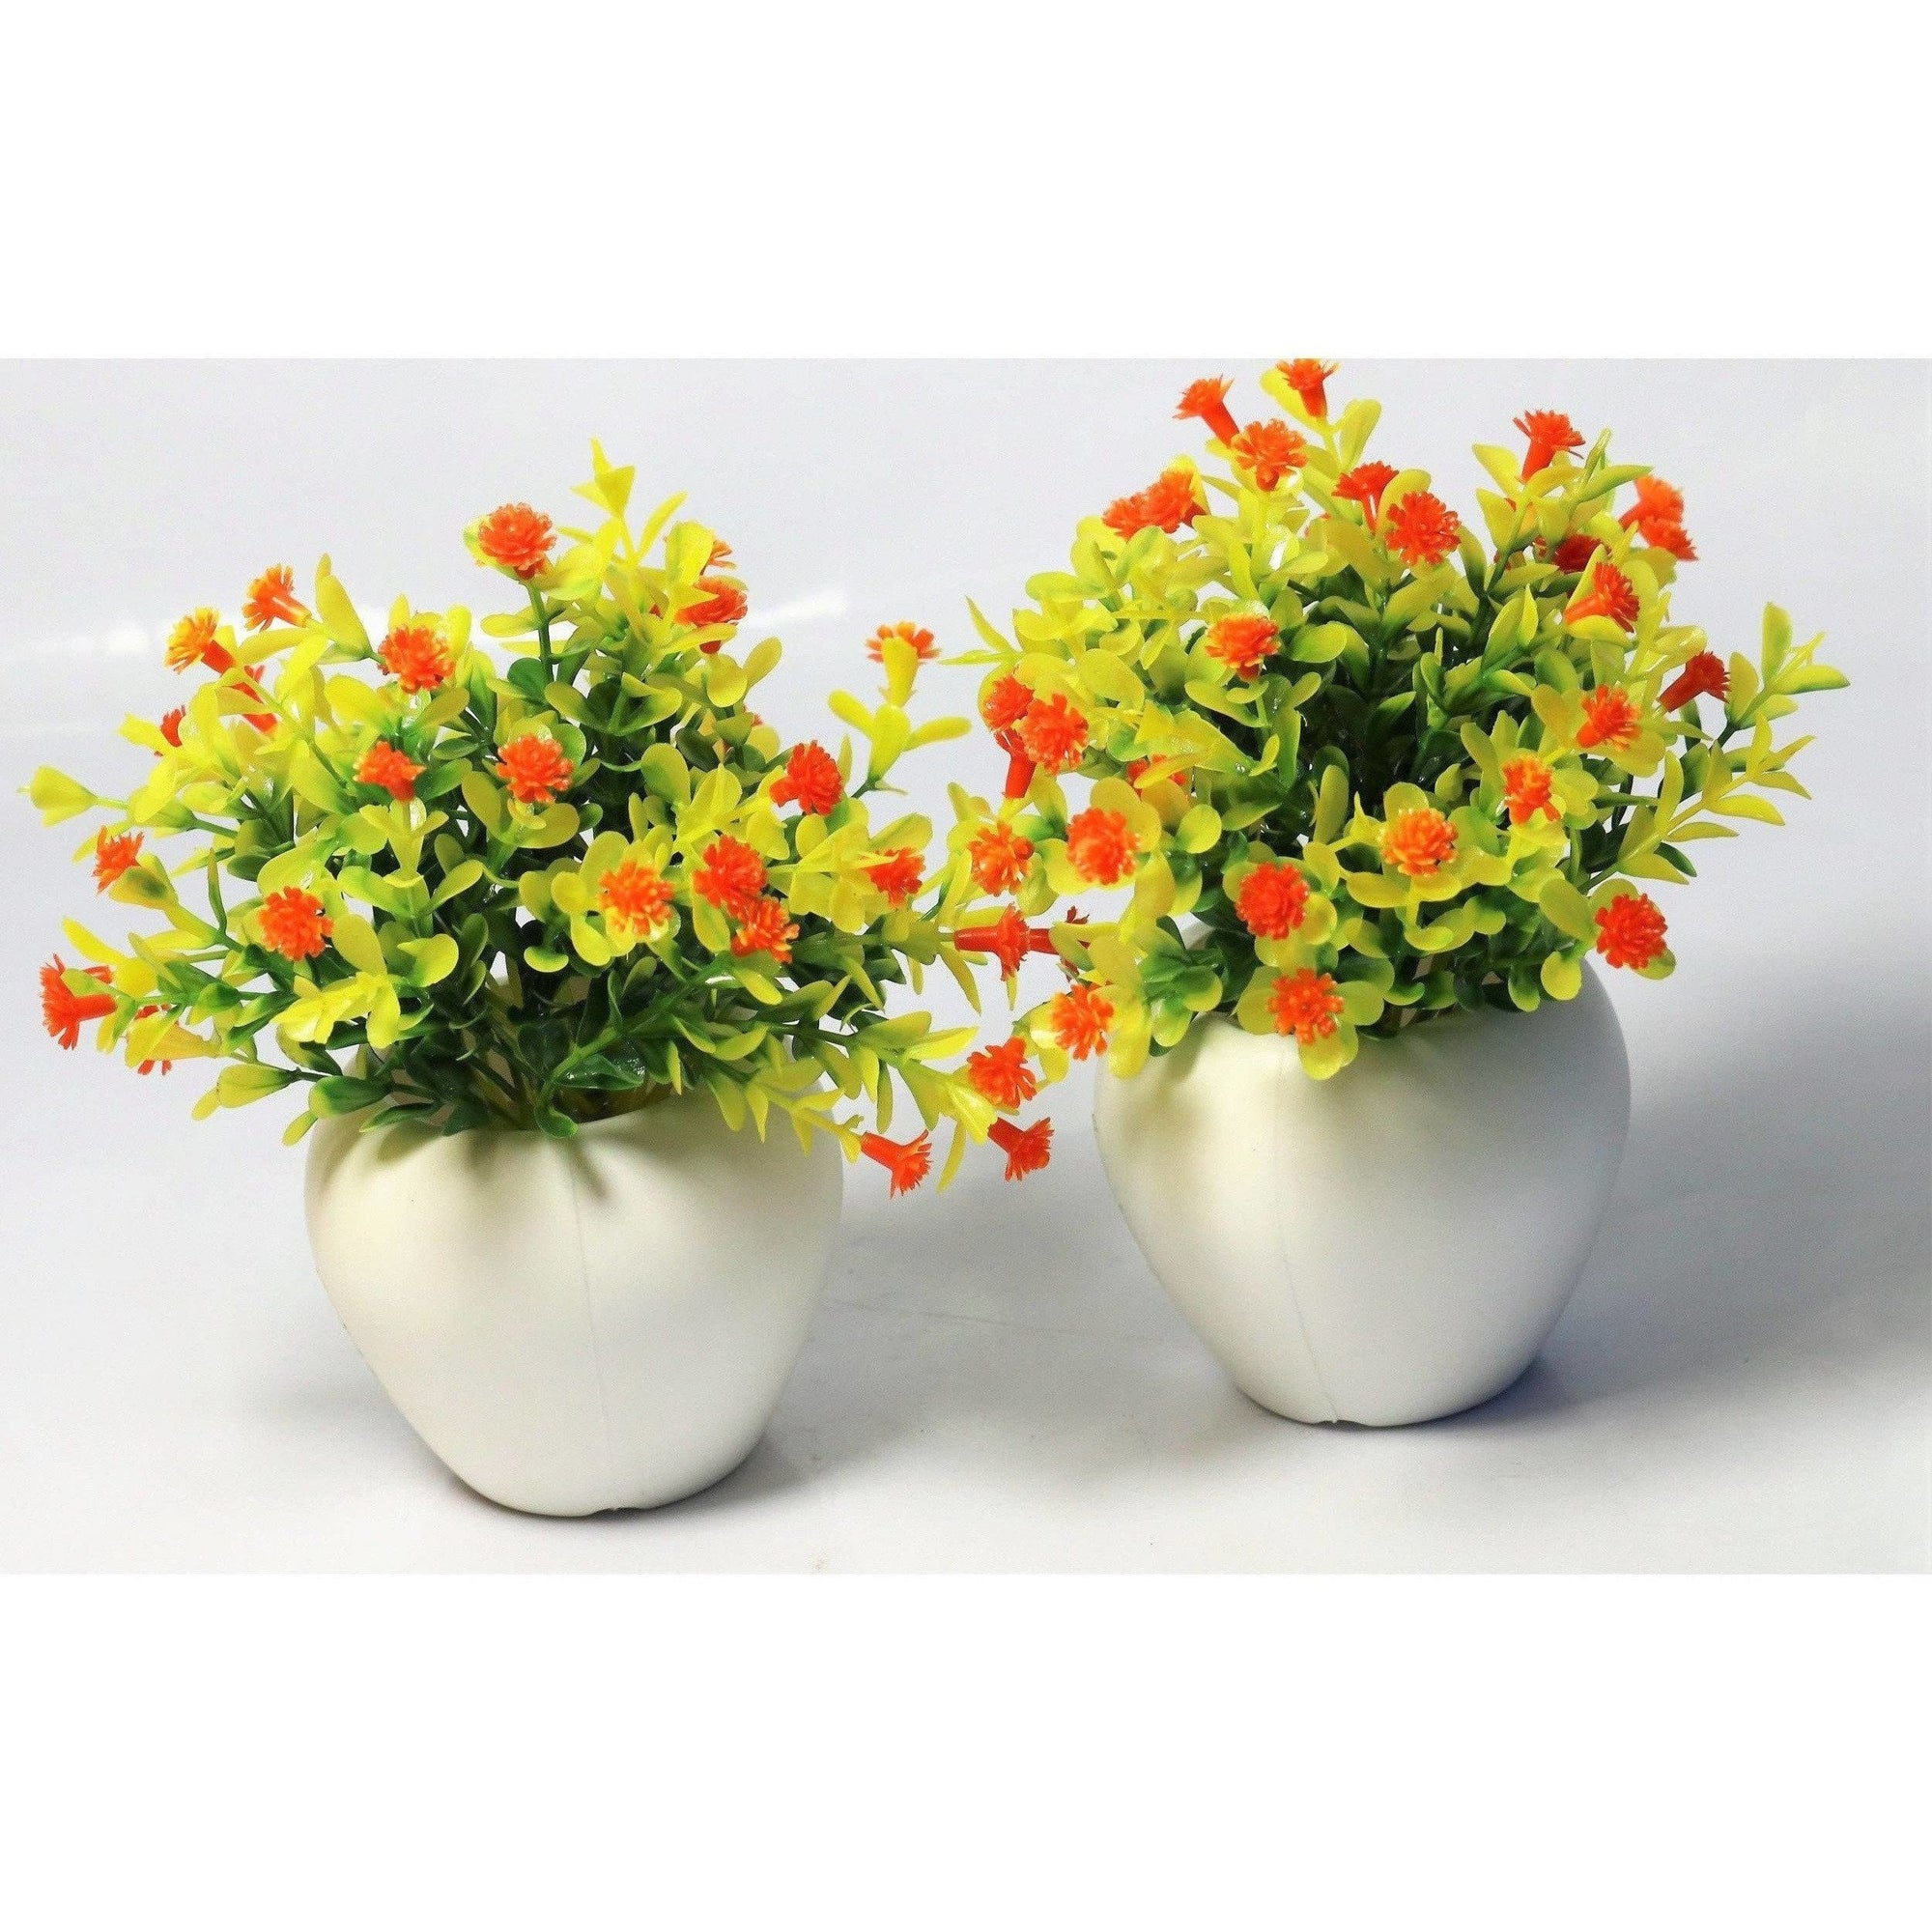 Chahat Decorative Artificial Flower Plant 2 Piece Combo